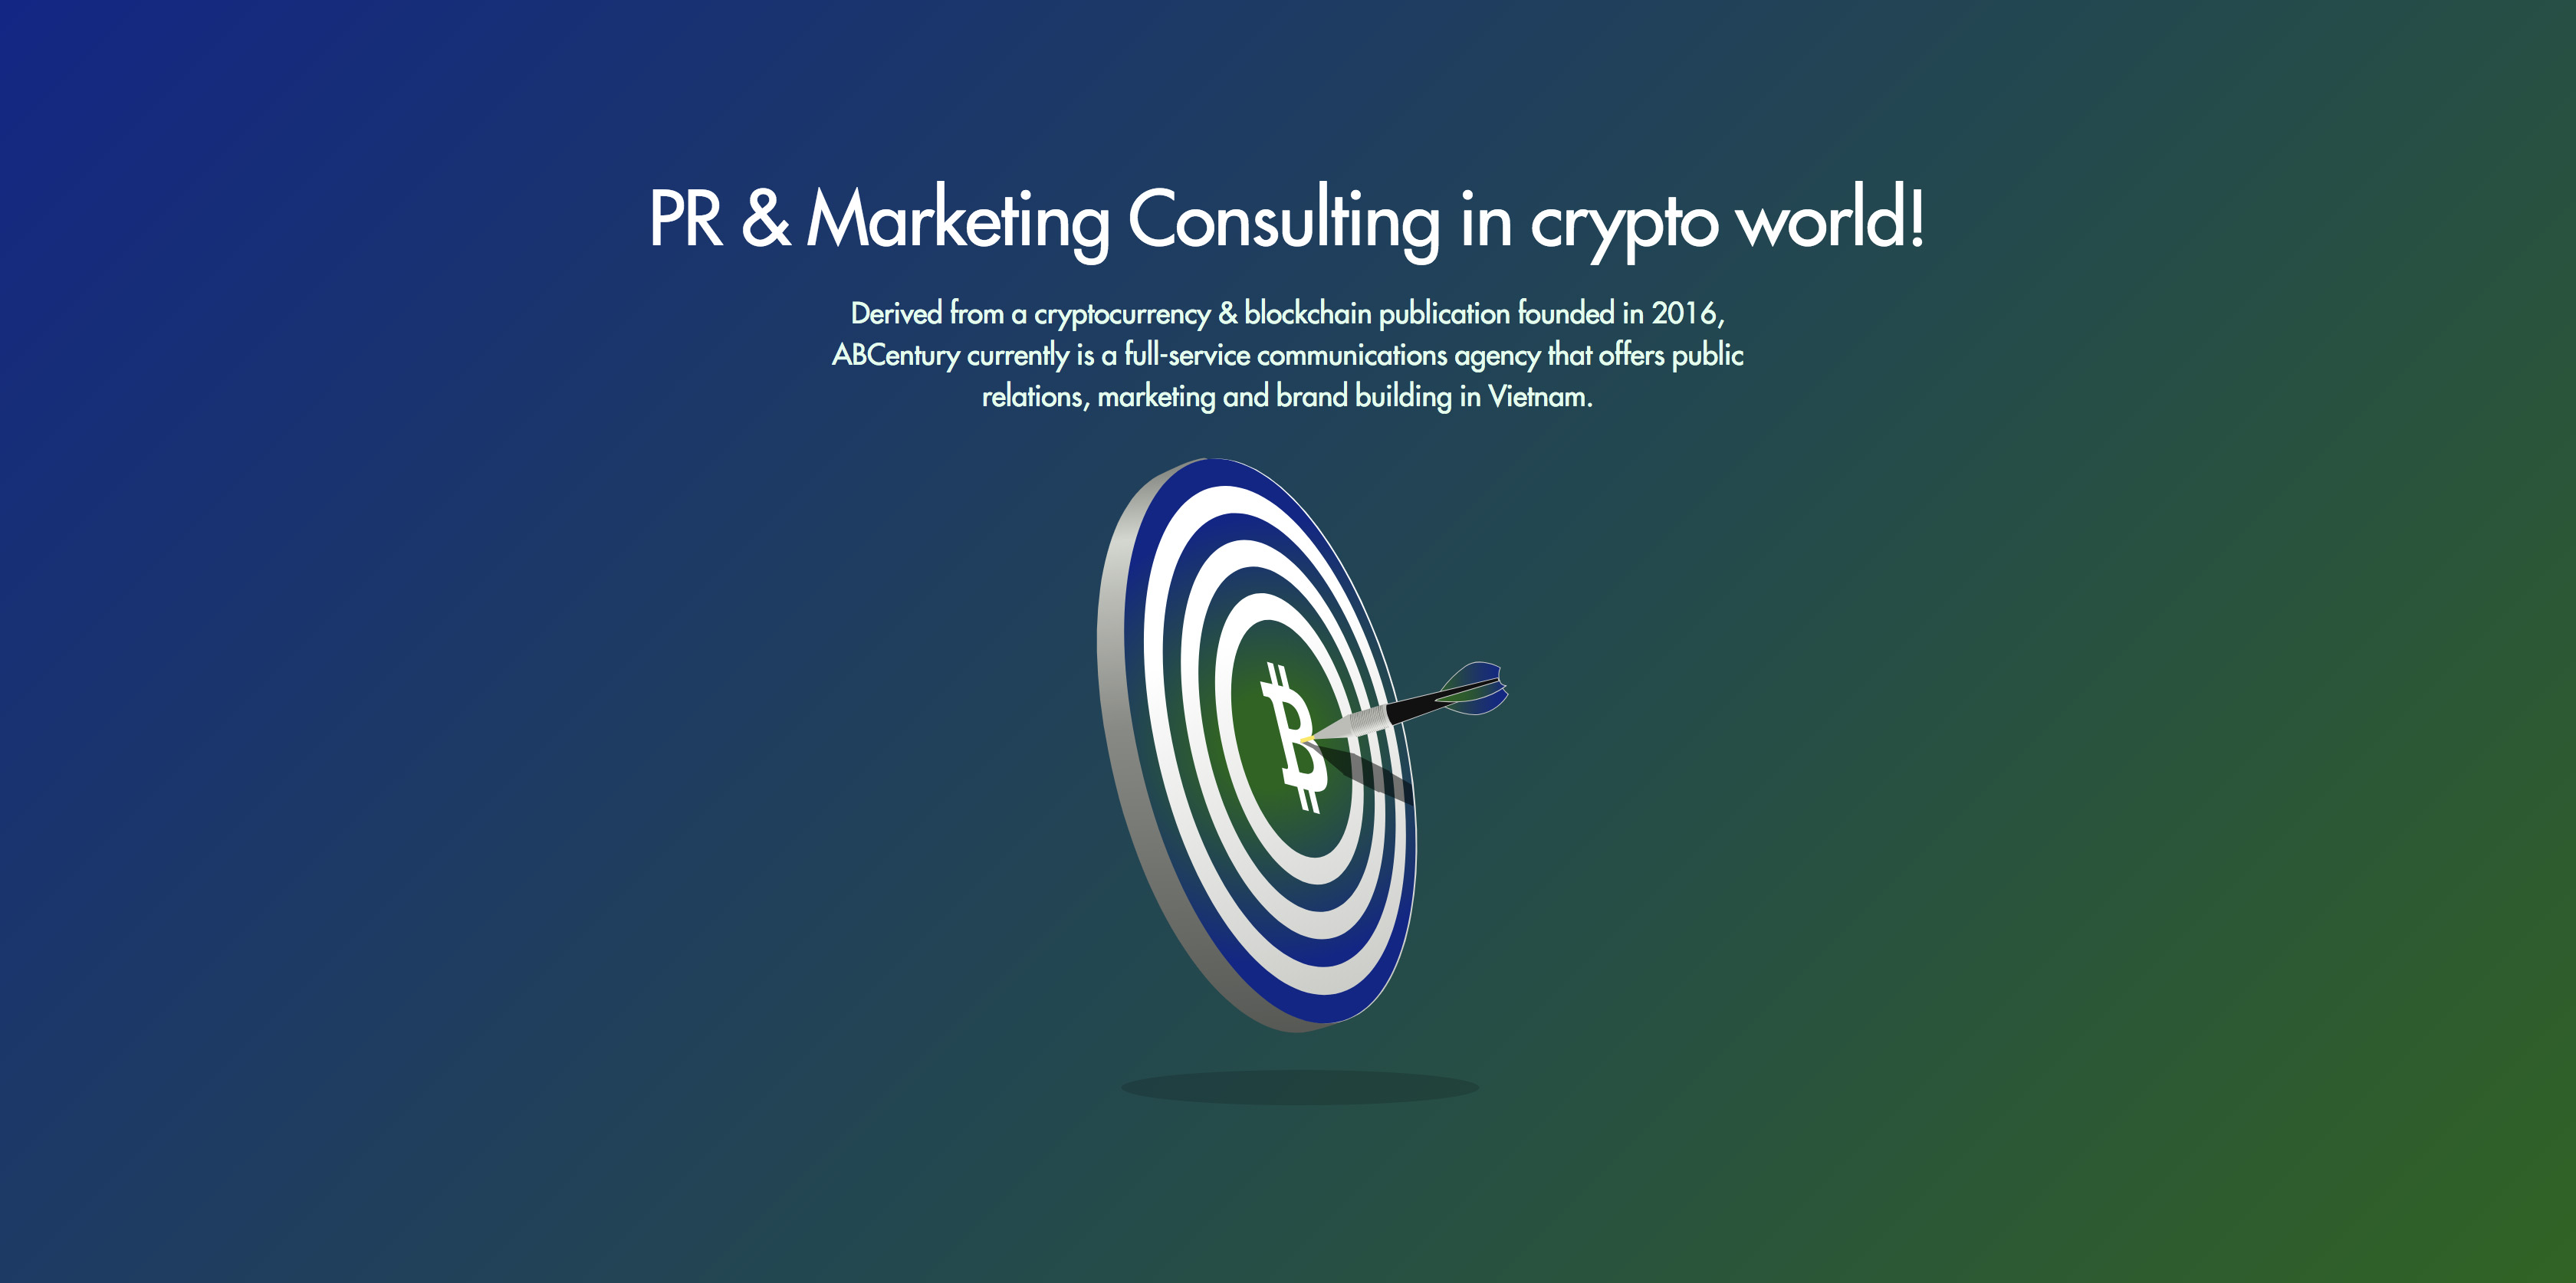 Tiendientu.org ABCentury - the pioneer PR & Marketing Consulting in crypto & blockchain industry 3